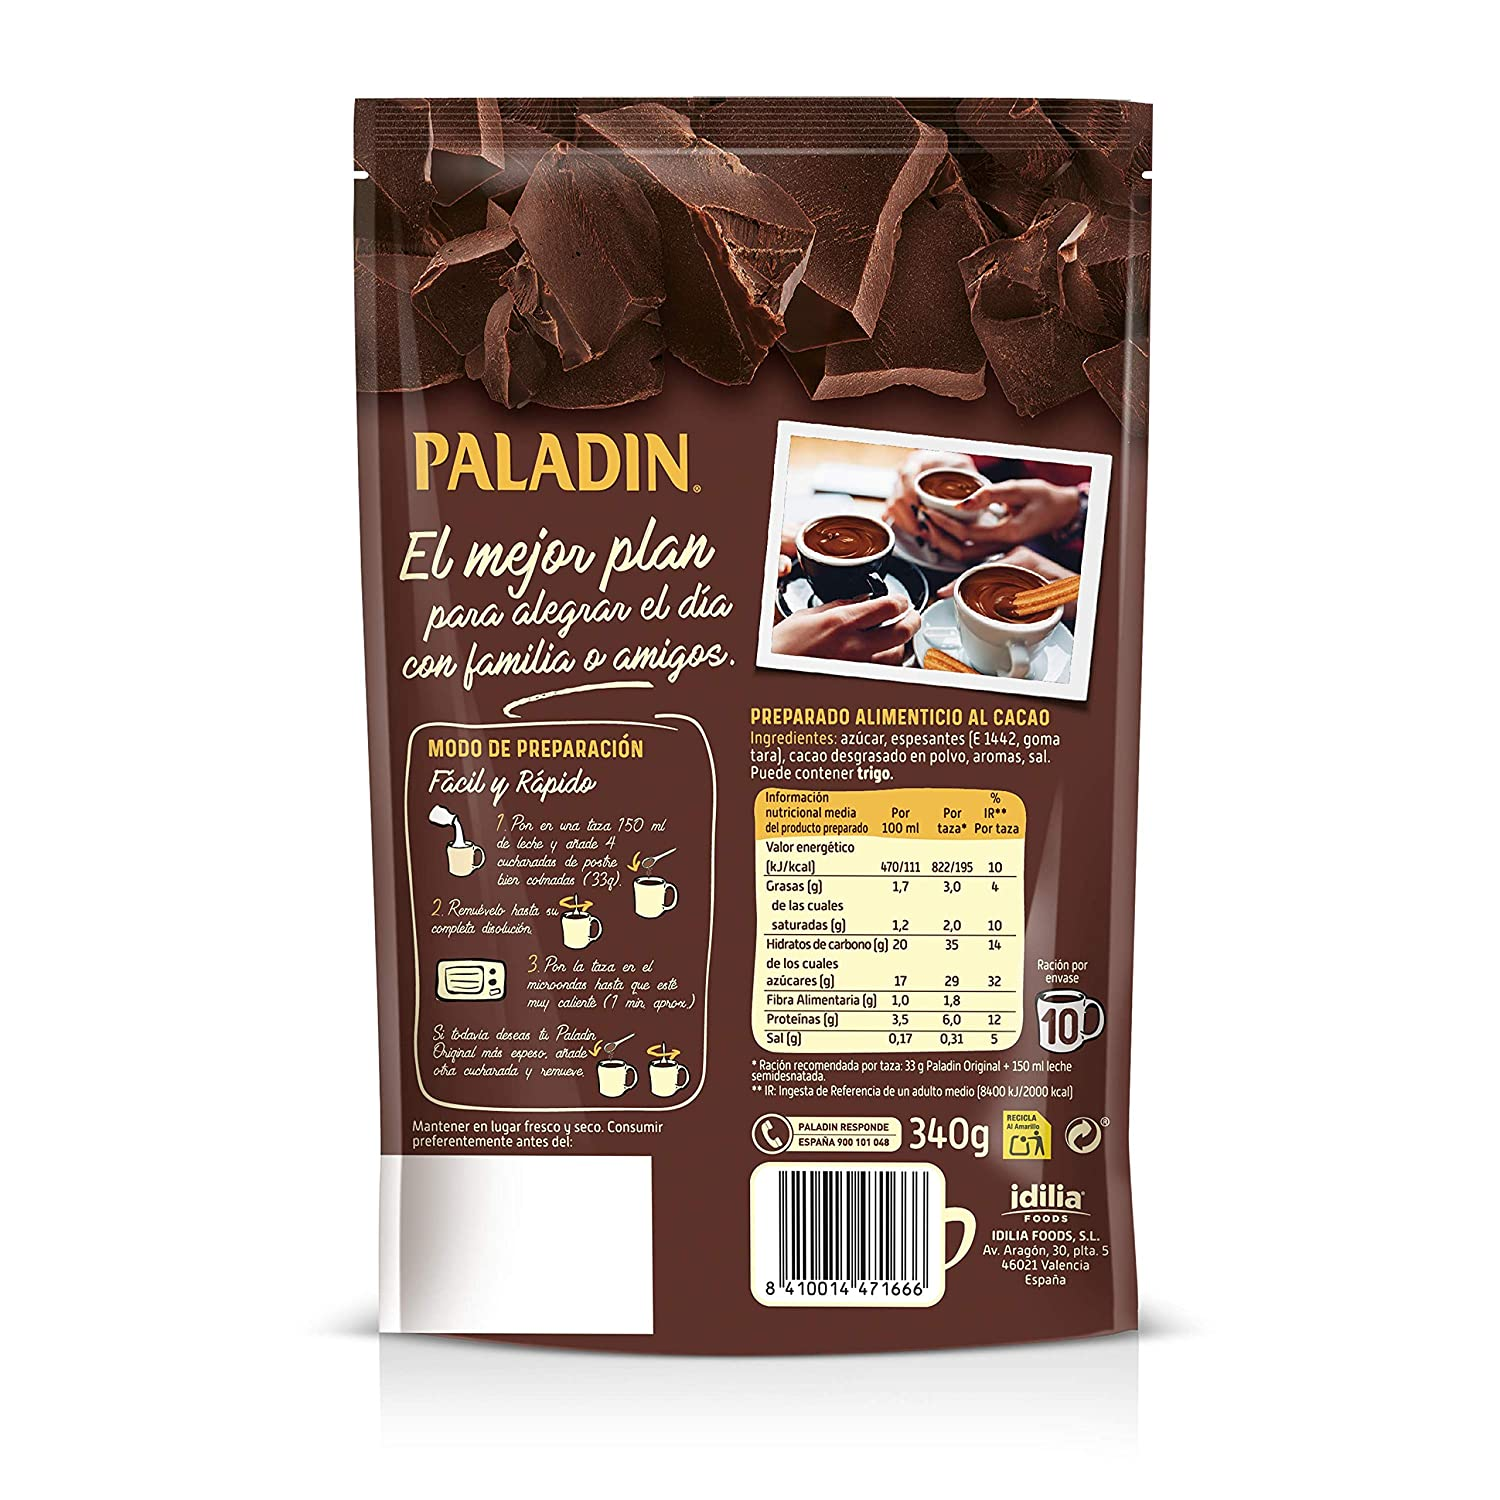 Paladin Paladin (Hot Chocolate Drink) 475 g